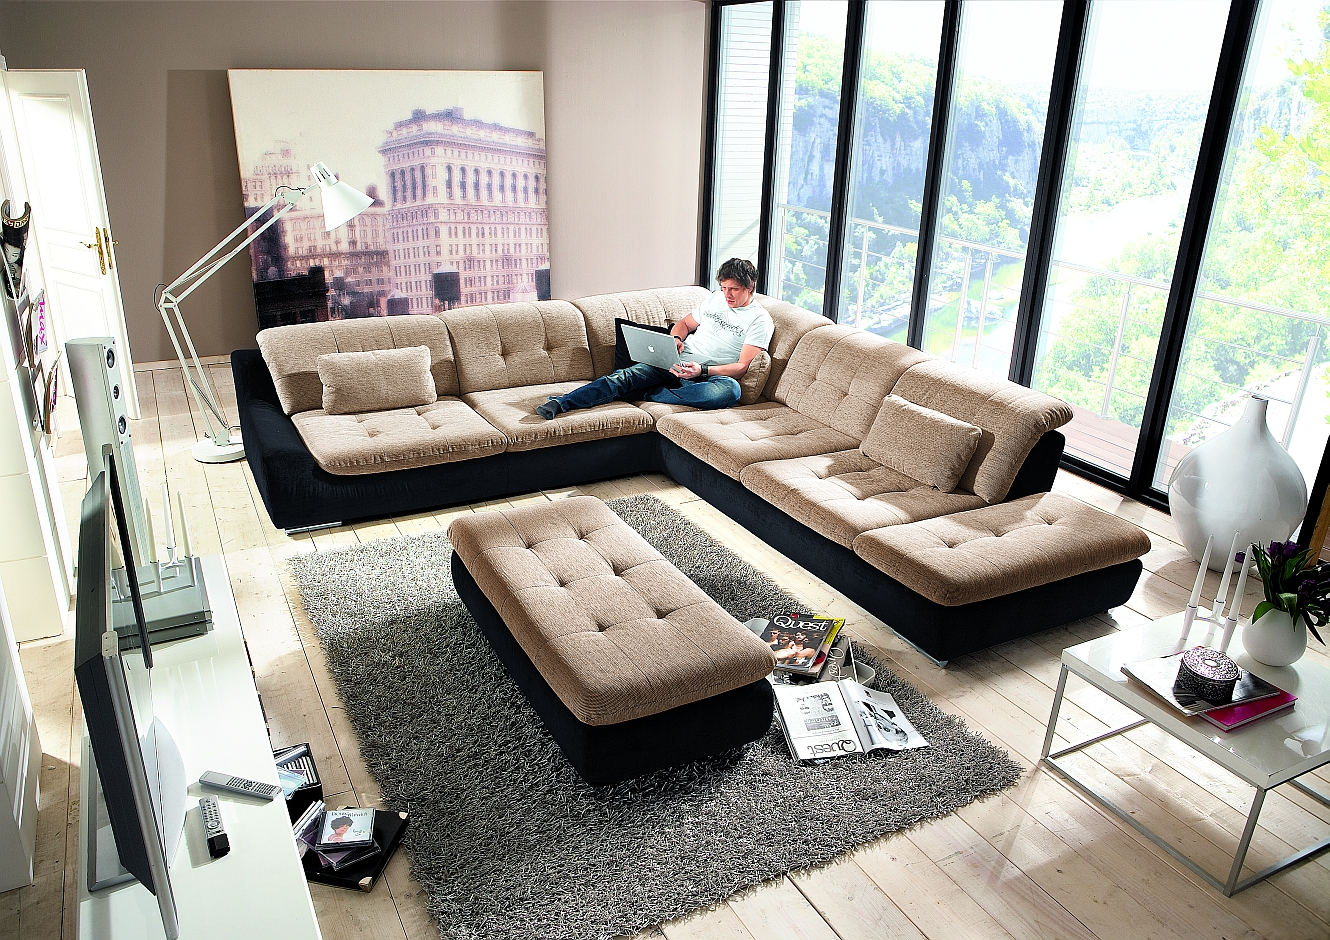 megapol sofa polsterm bel g nstig kaufen. Black Bedroom Furniture Sets. Home Design Ideas